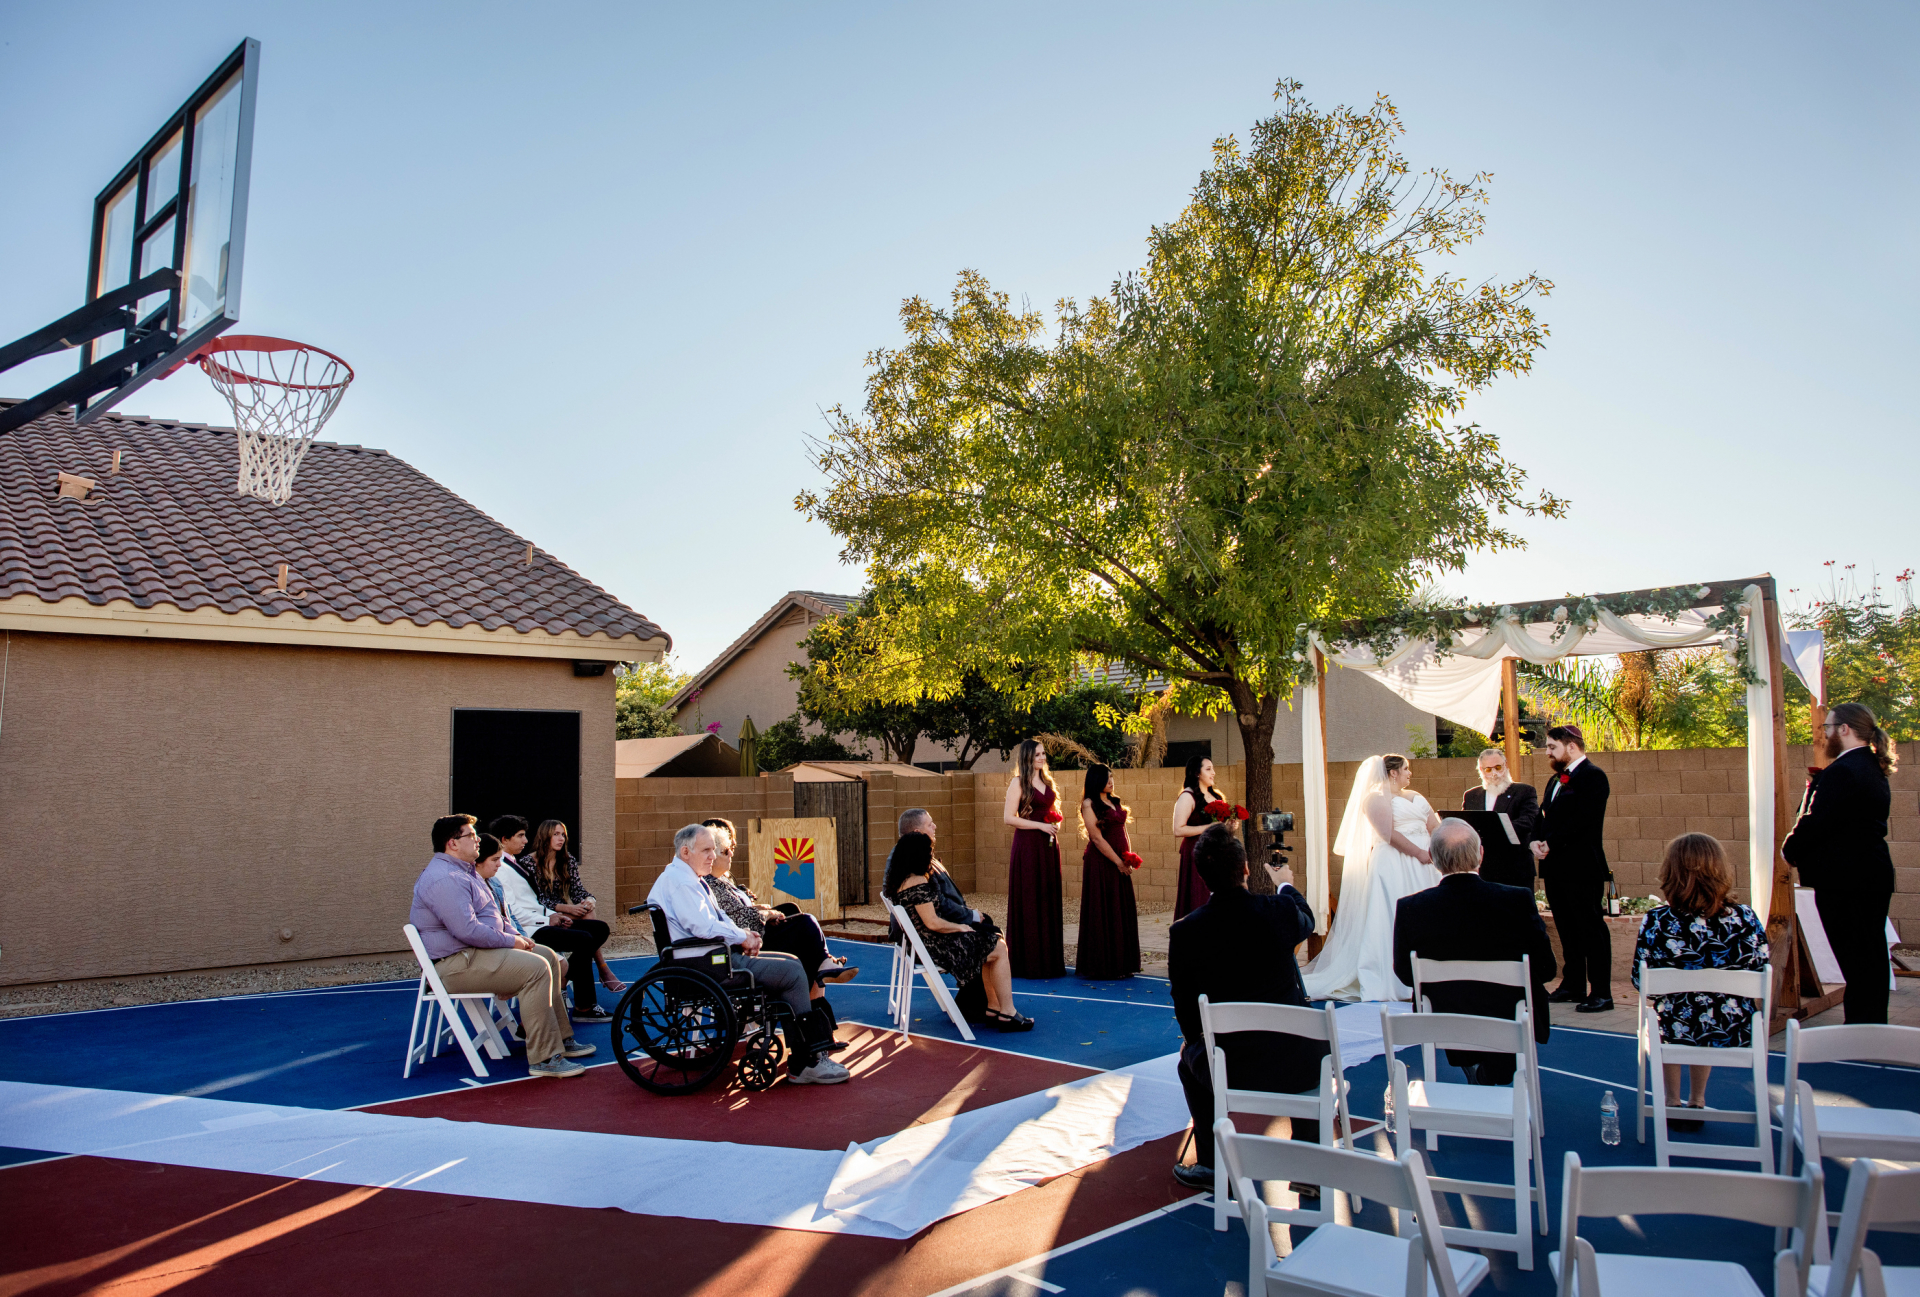 Phoenix Wedding Photography | Arizona sun shining brightly, the bride and groom begin their ceremony